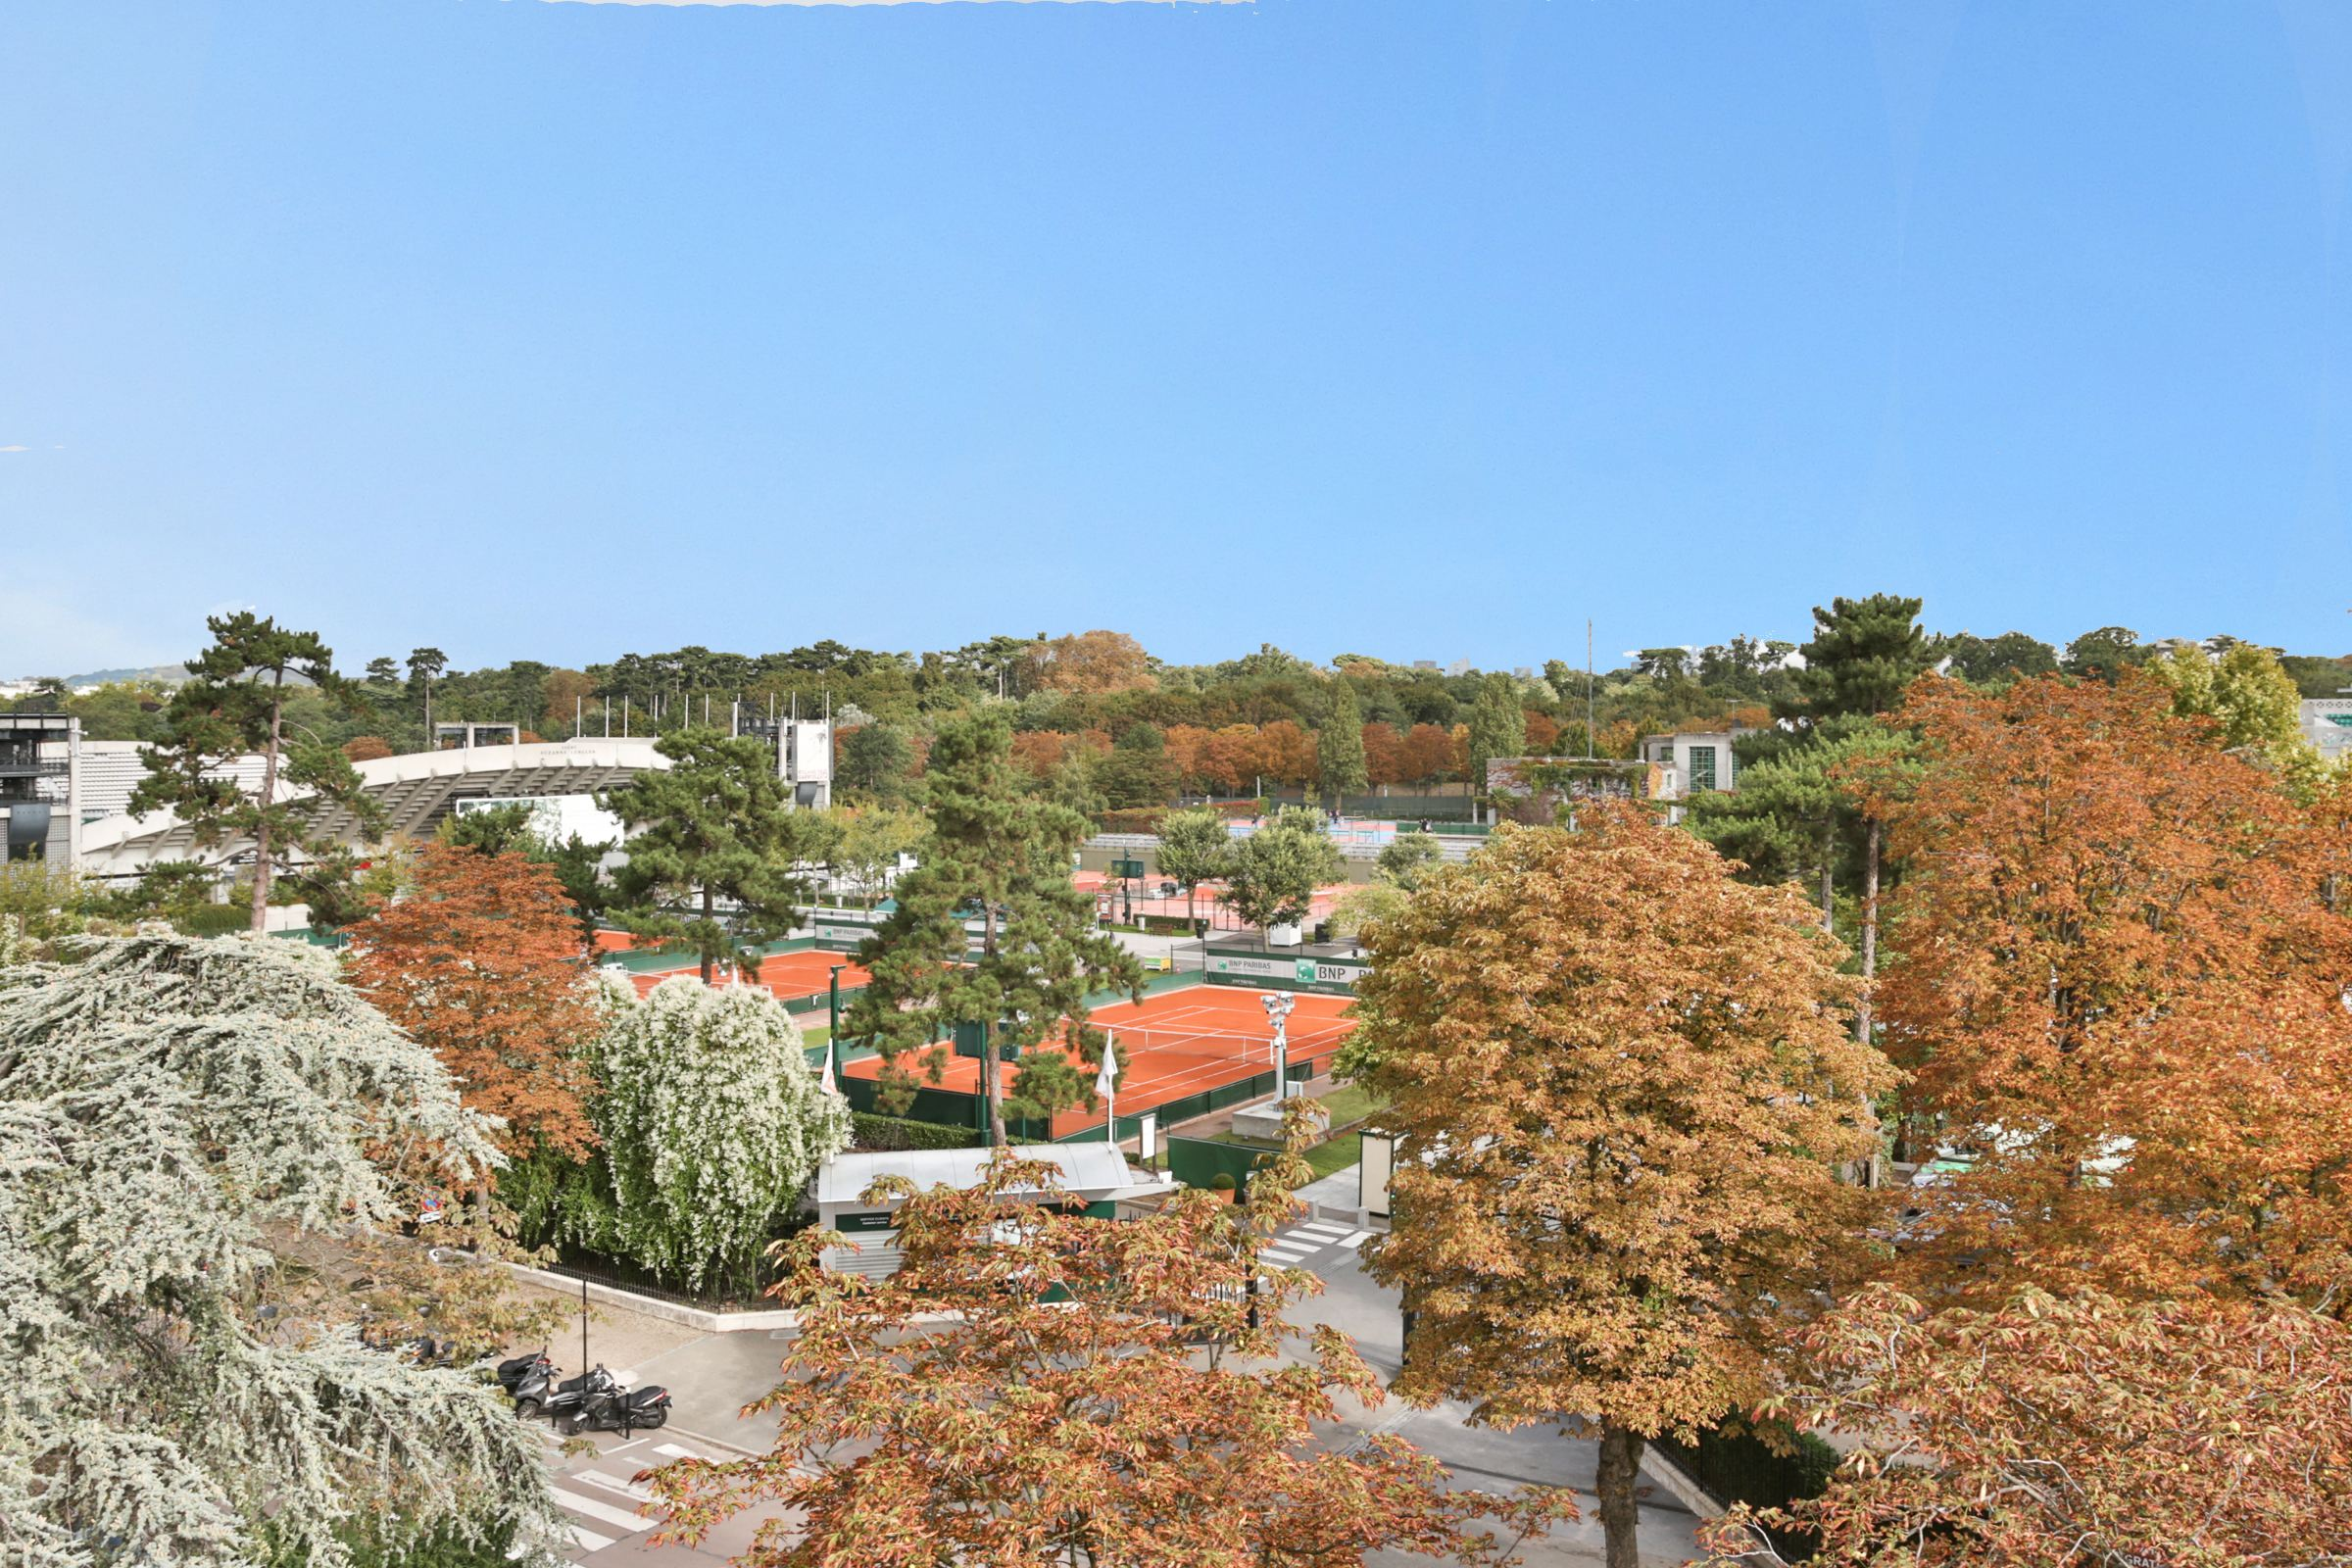 Property For Sale at Boulogne - Sole Agent. Top floor, 200 sq.m + balcony + lock up garage